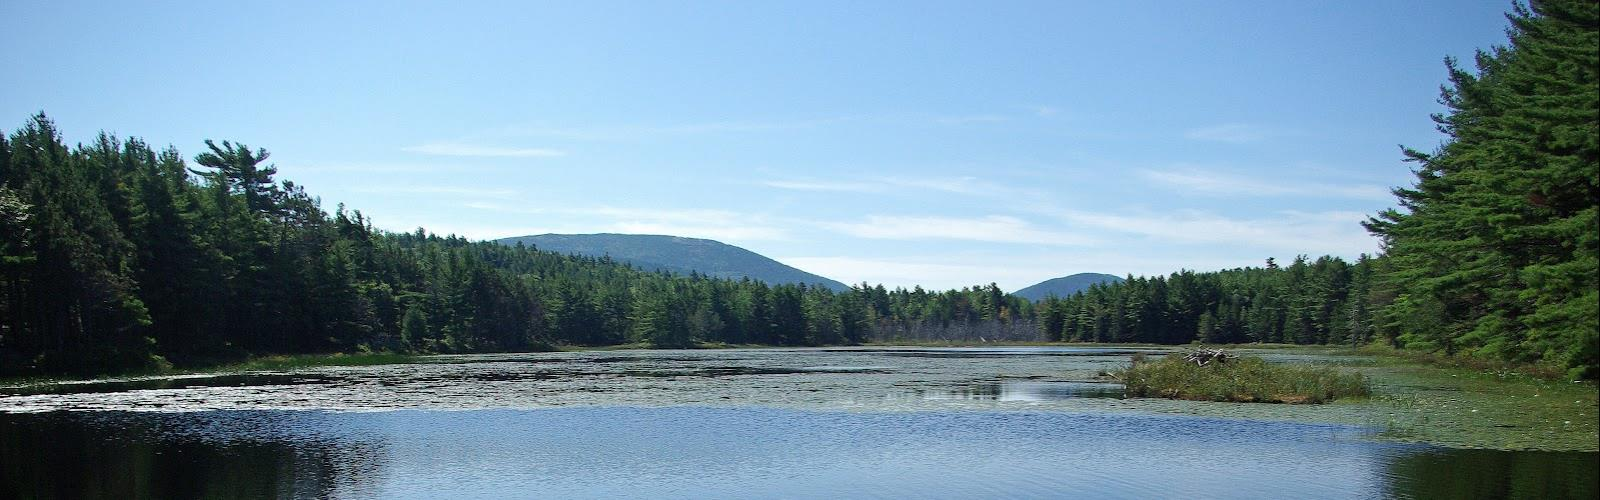 Mcfarland Mountain, Maine - Hiking  outdoor tree water sky mountain landscape cloud lake nature pond surrounded day